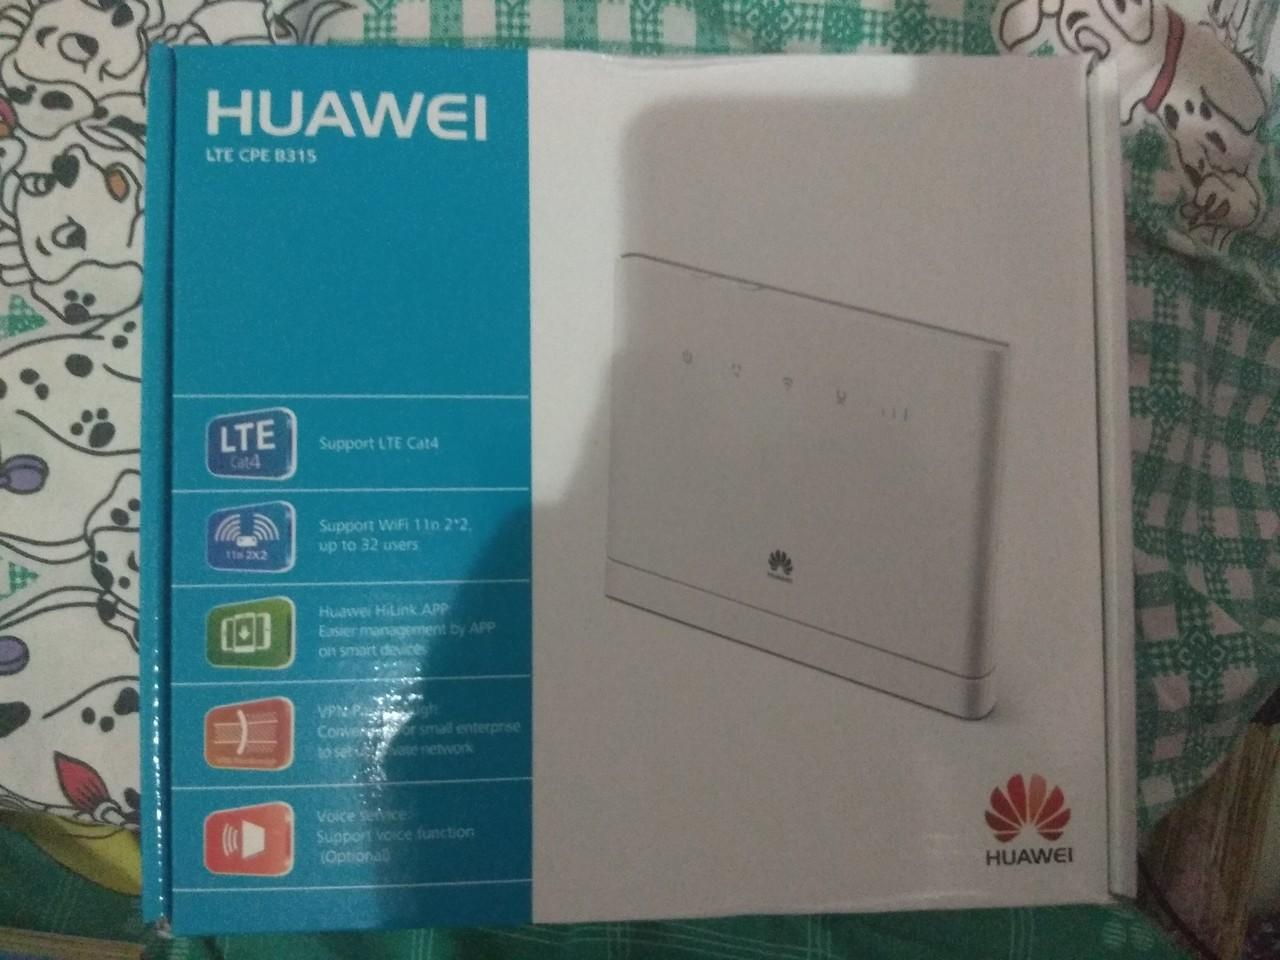 Huawei Home B315s Unlock 4g Bundle Indosat Unlimited Internet 1 Router B310 Free Xl 240gb Unlocked Review Tahun